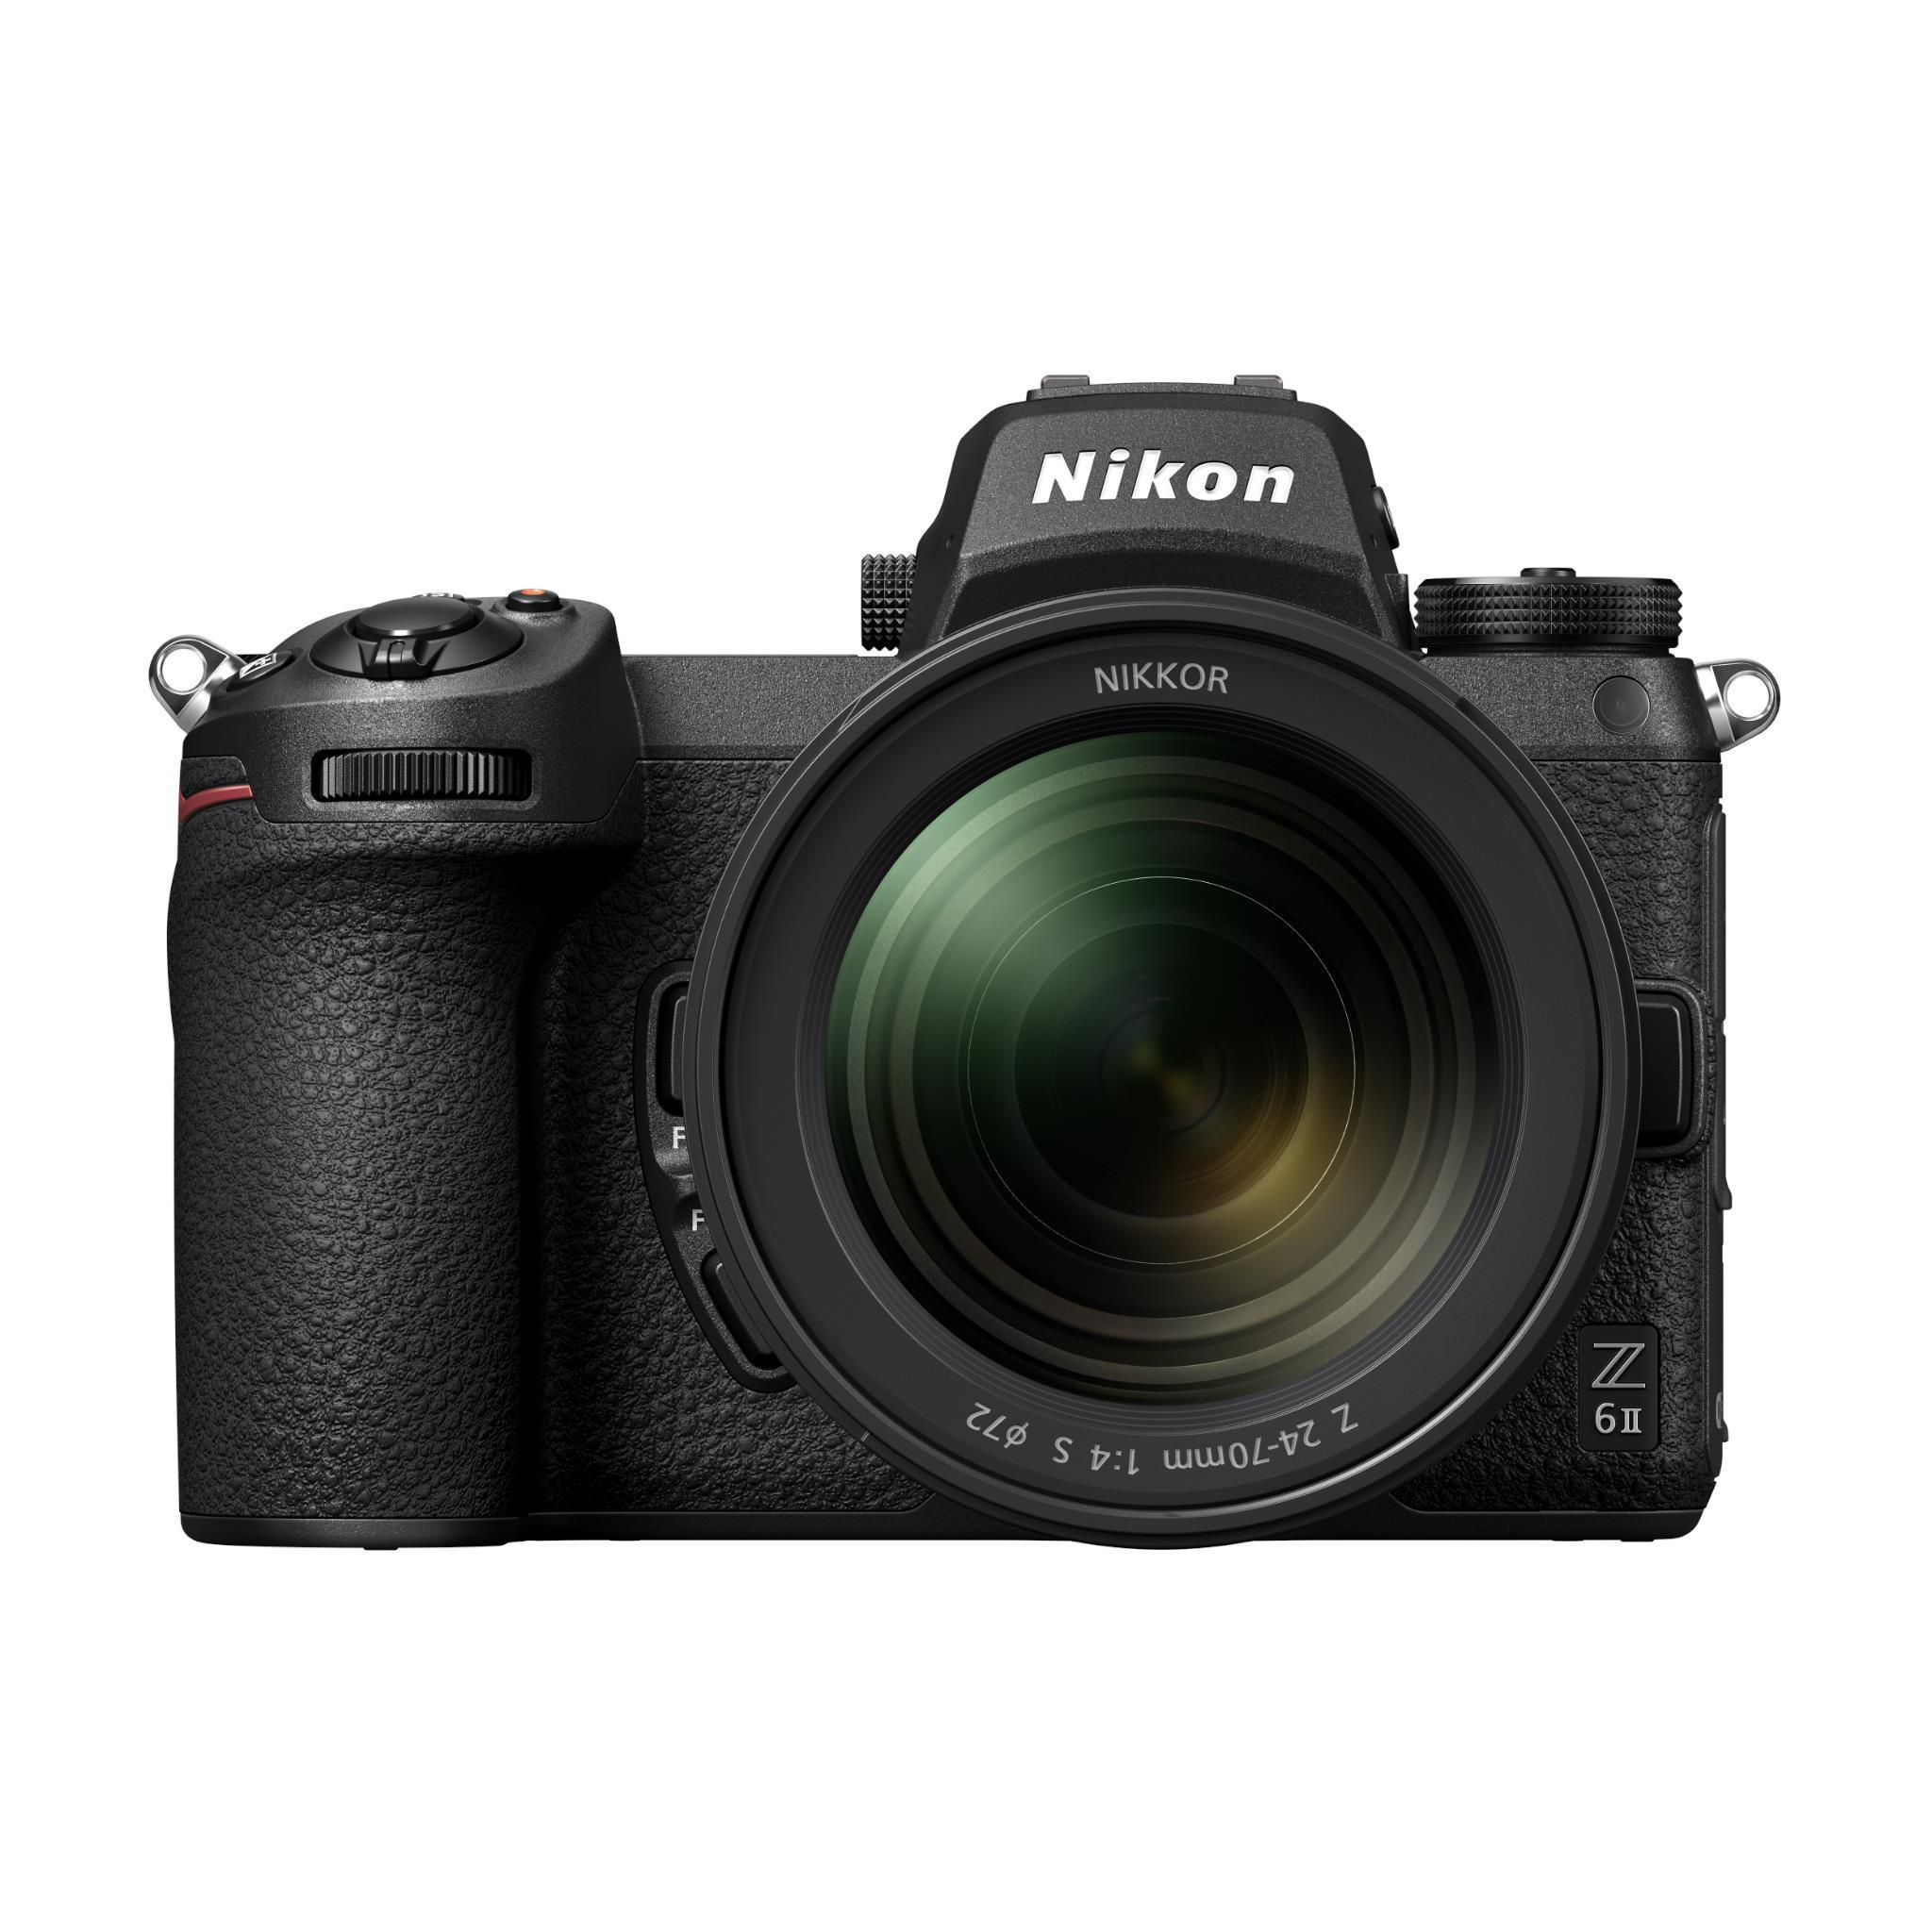 Nikon Z 6 II Mirrorless Camera with NIKKOR Z 24-70mm f/4 S Lens